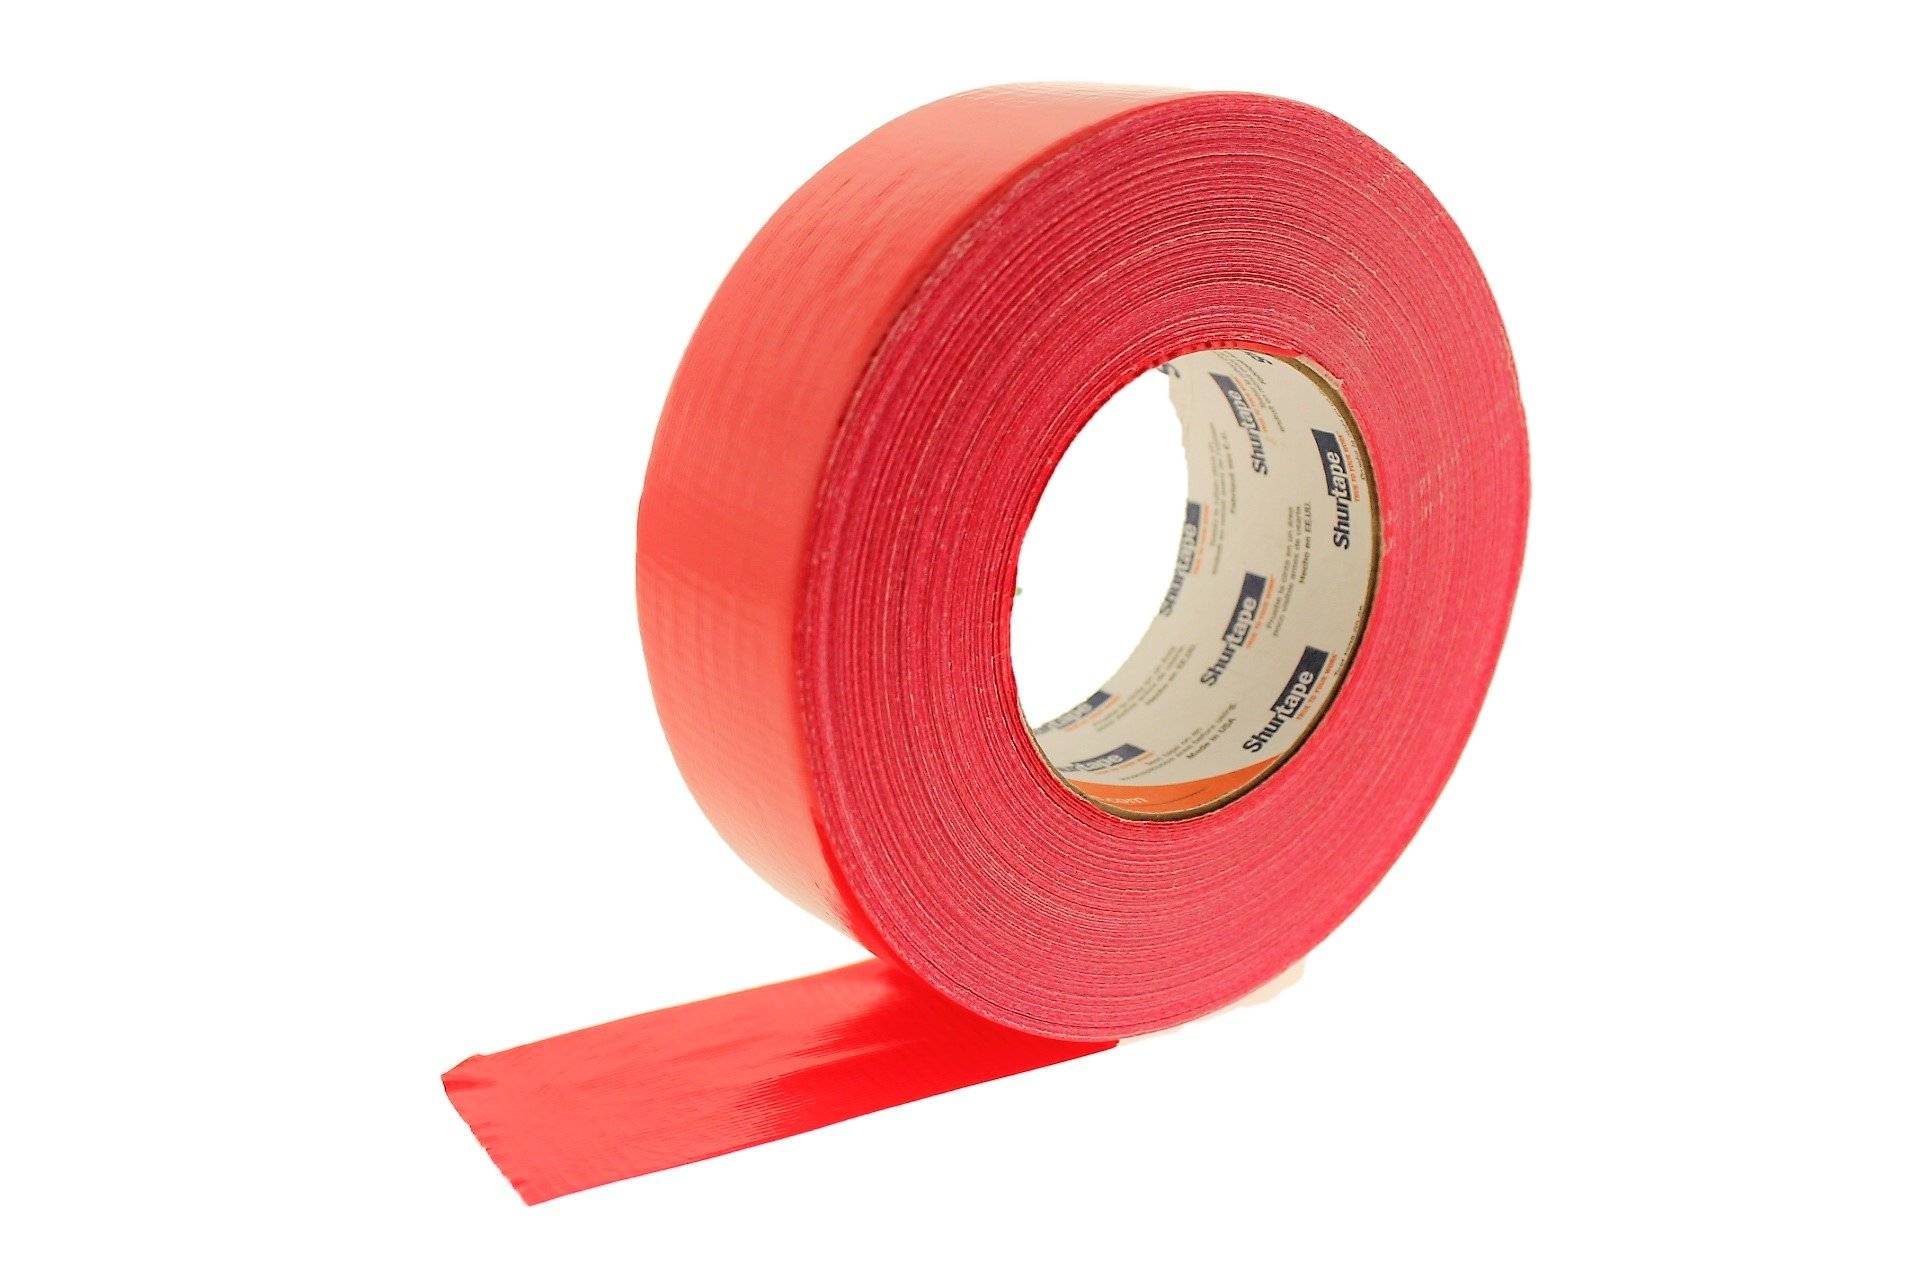 PC-600 Shurtape 2'' Red 9 Mil Cloth Duct Tape Waterproof Hand Tearable UV Resistant High Visibility Industrial Grade Heavy Duty Pro Colored Duct Tape Colors USA Made 60yd